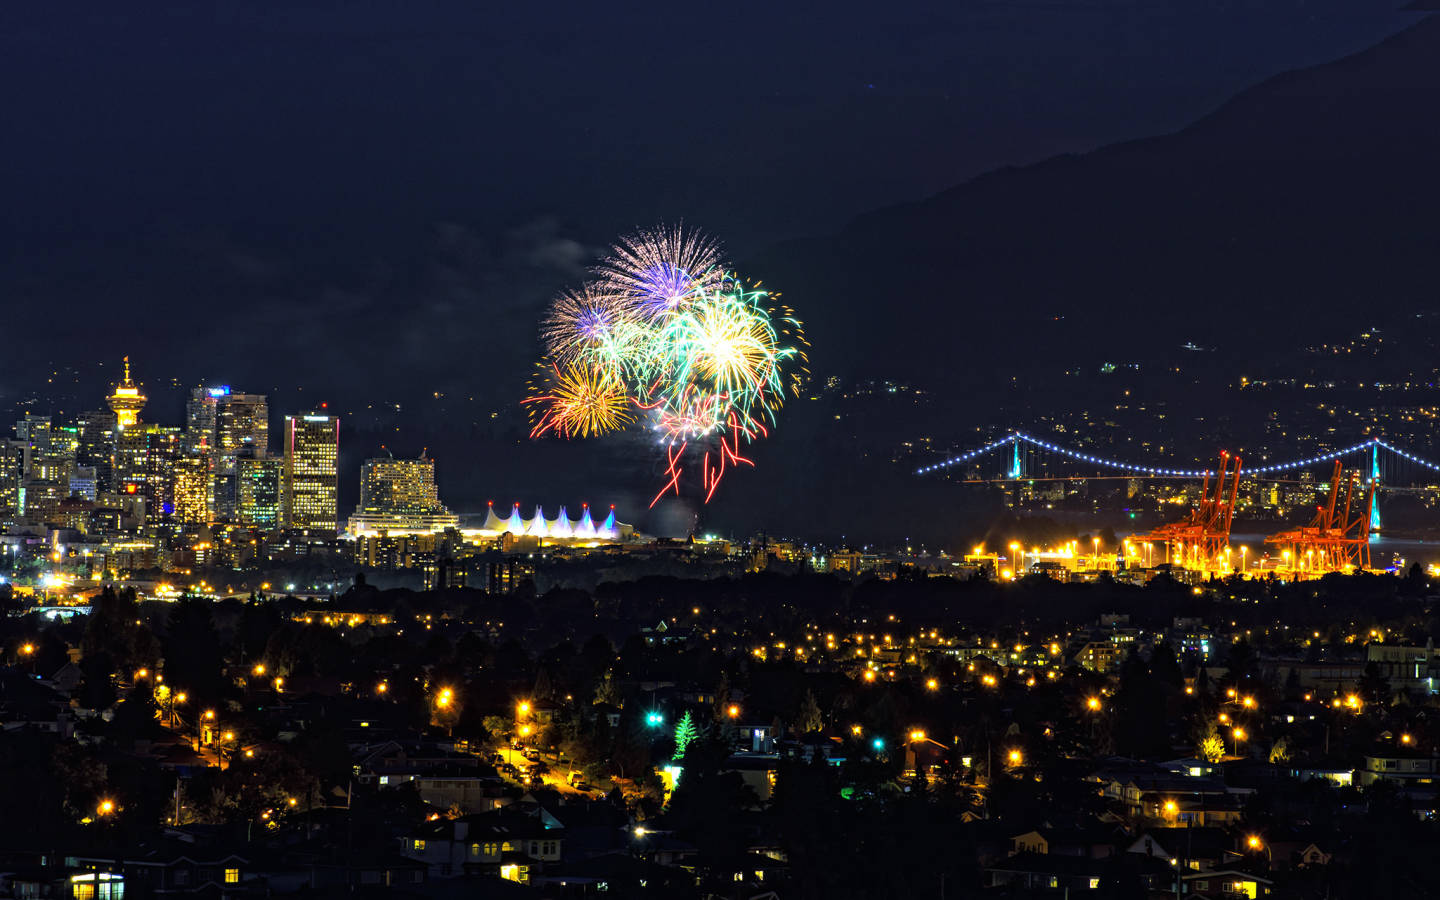 Vancouver Canada Day fireworks (2012)